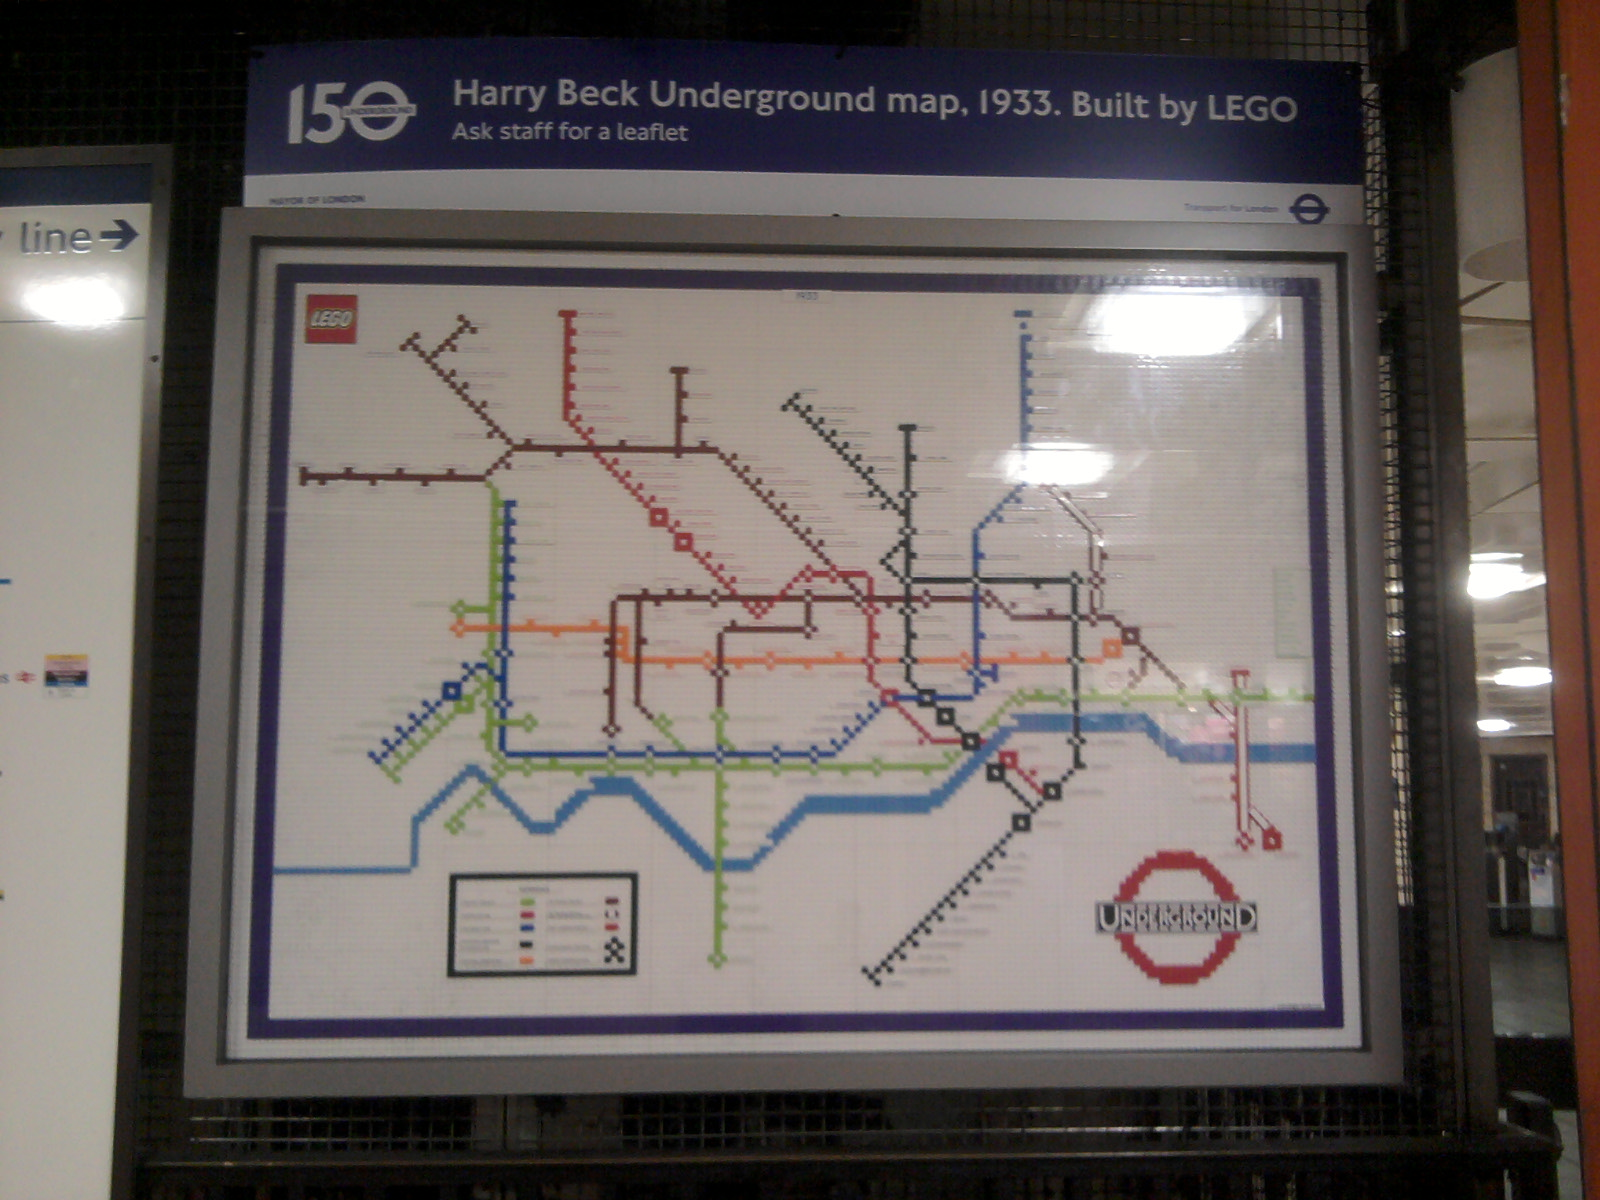 LEGO 1933 Harry Beck Underground Map in Piccadilly Circus ticket hall